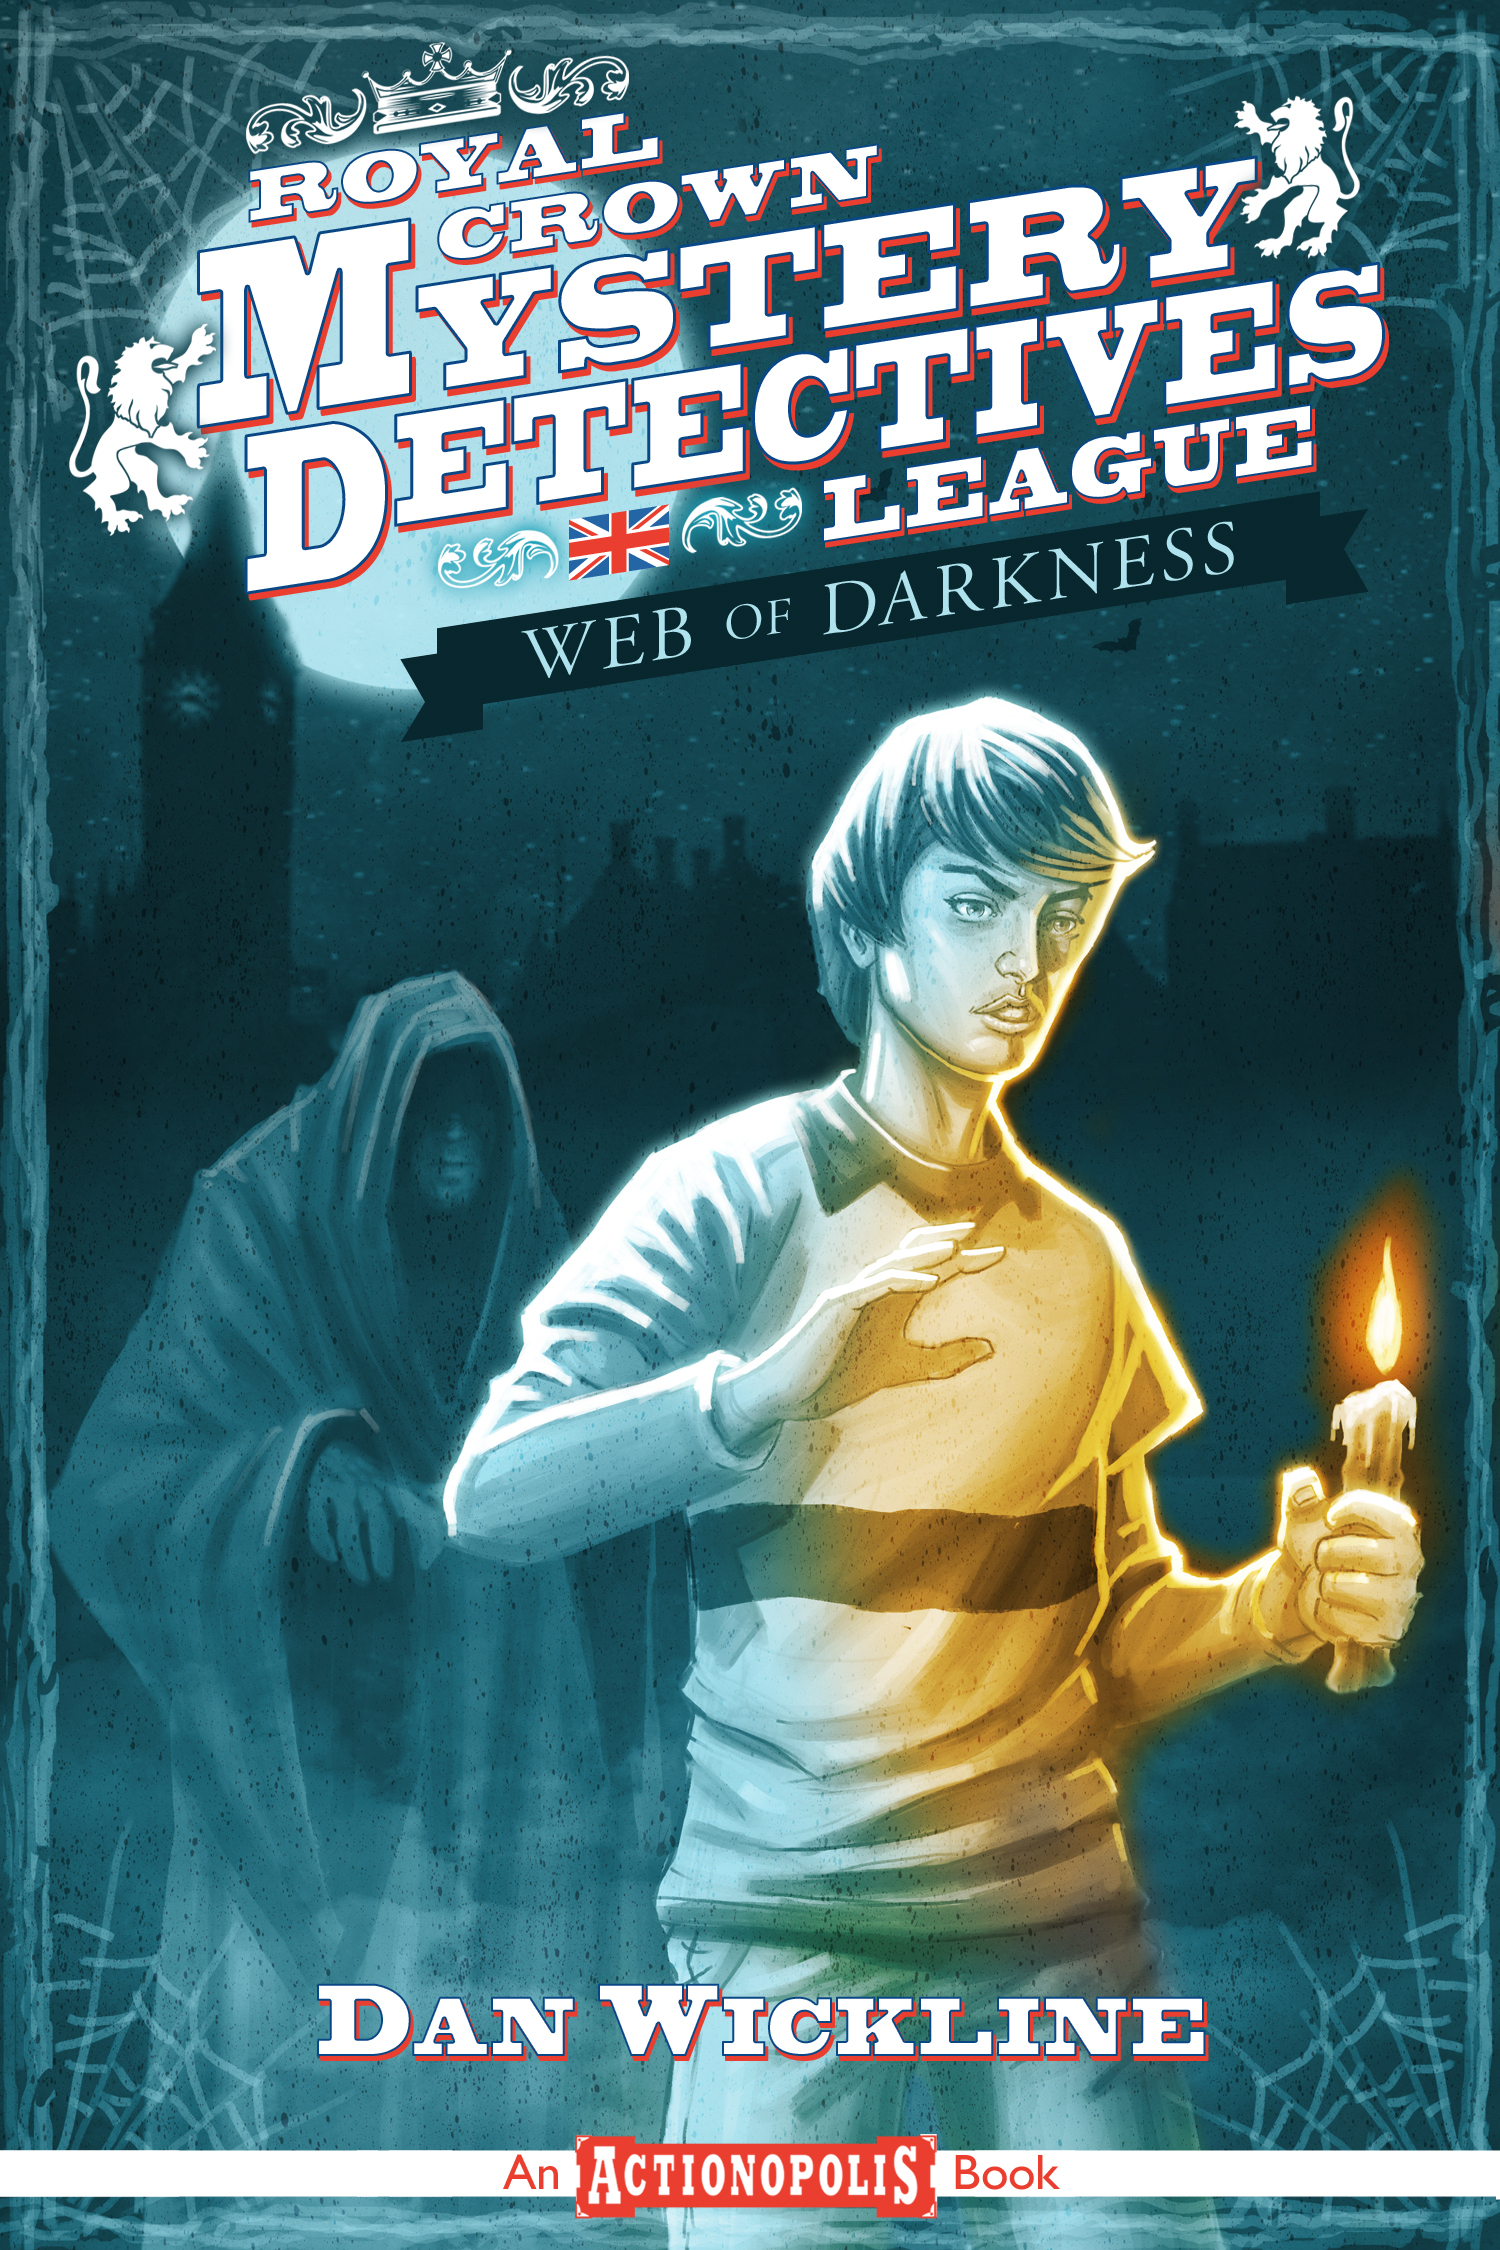 Royal Crown Mystery Detectives League: Web Of Darkness